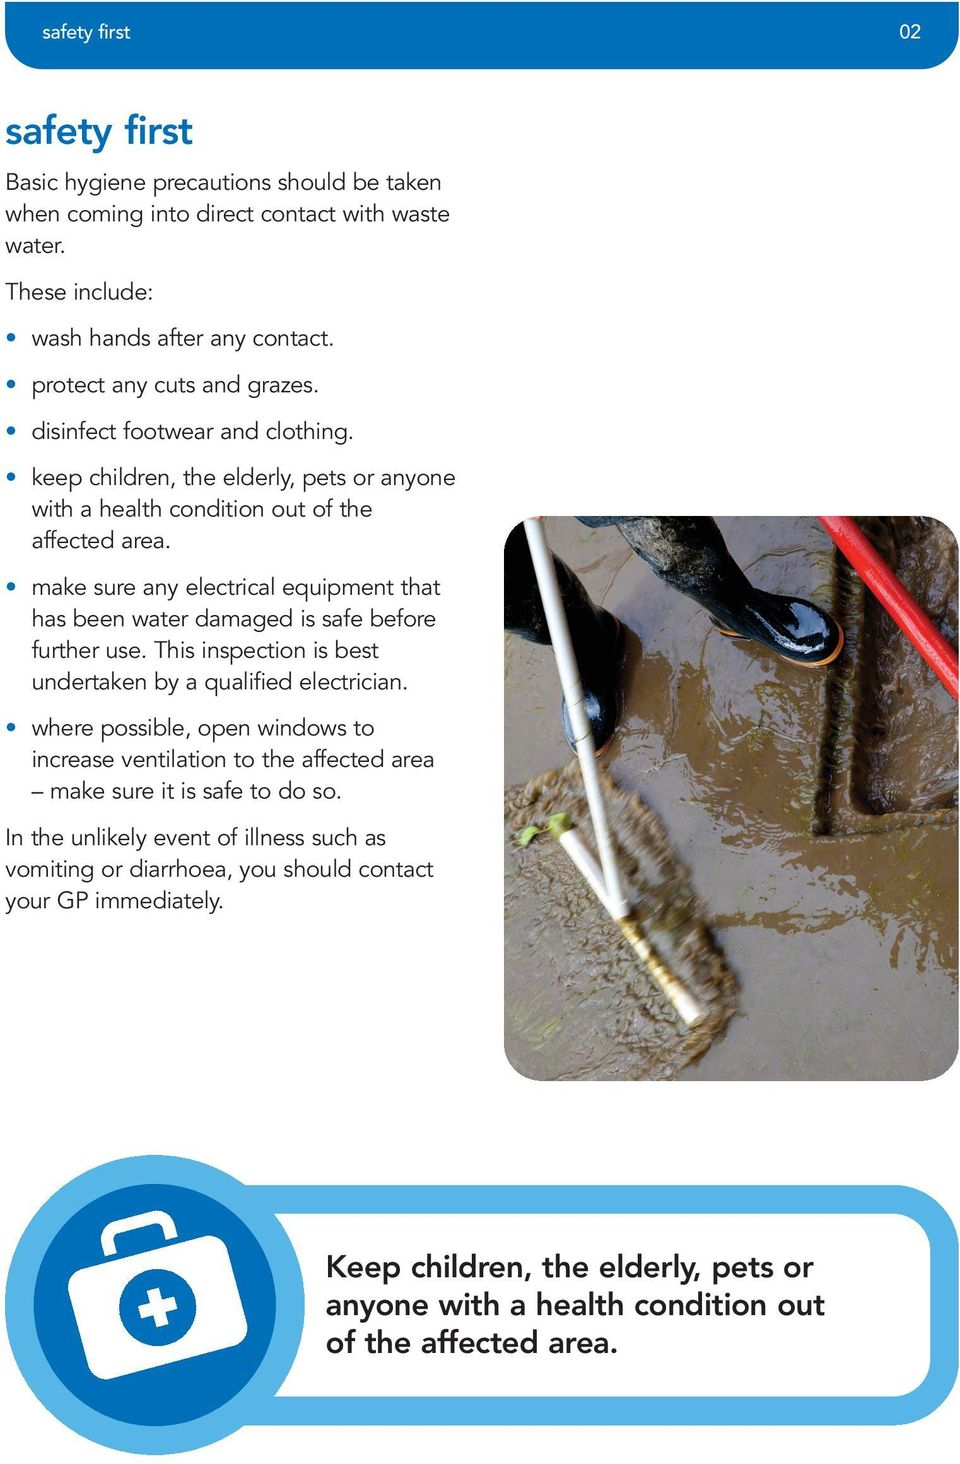 make sure any electrical equipment that has been water damaged is safe before further use. This inspection is best undertaken by a qualified electrician.